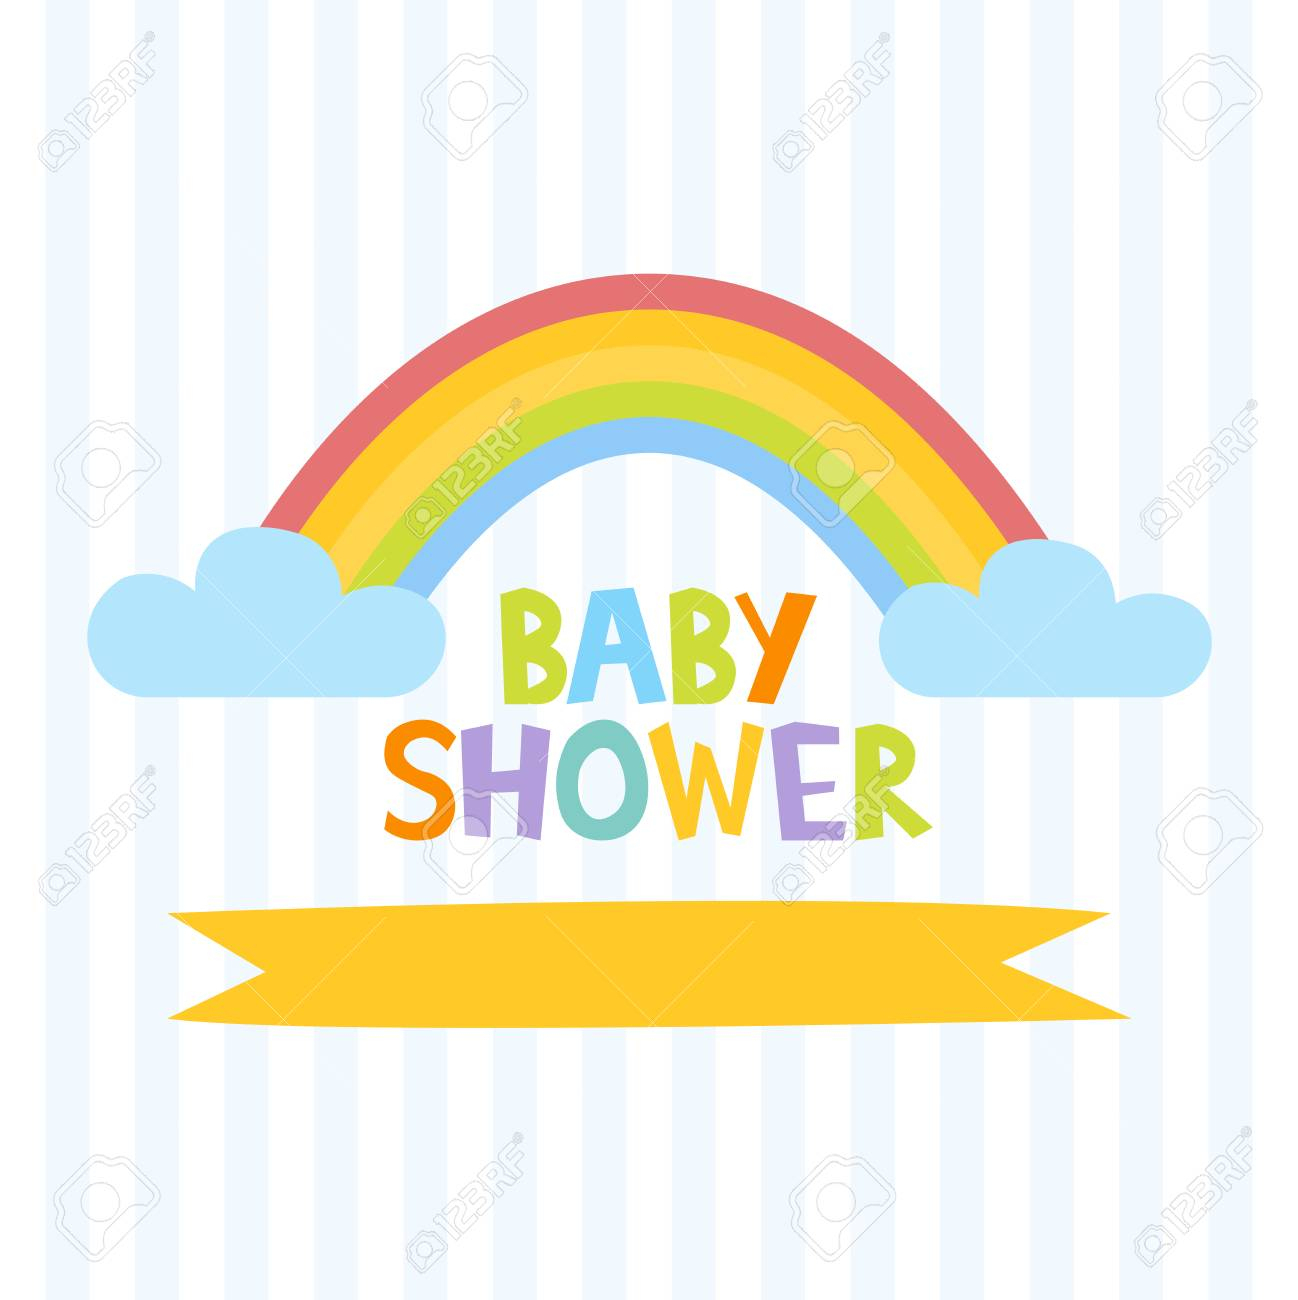 Cute Baby Shower Invitation Template With Letters And Rainbow - Free Printable Rainbow Letters